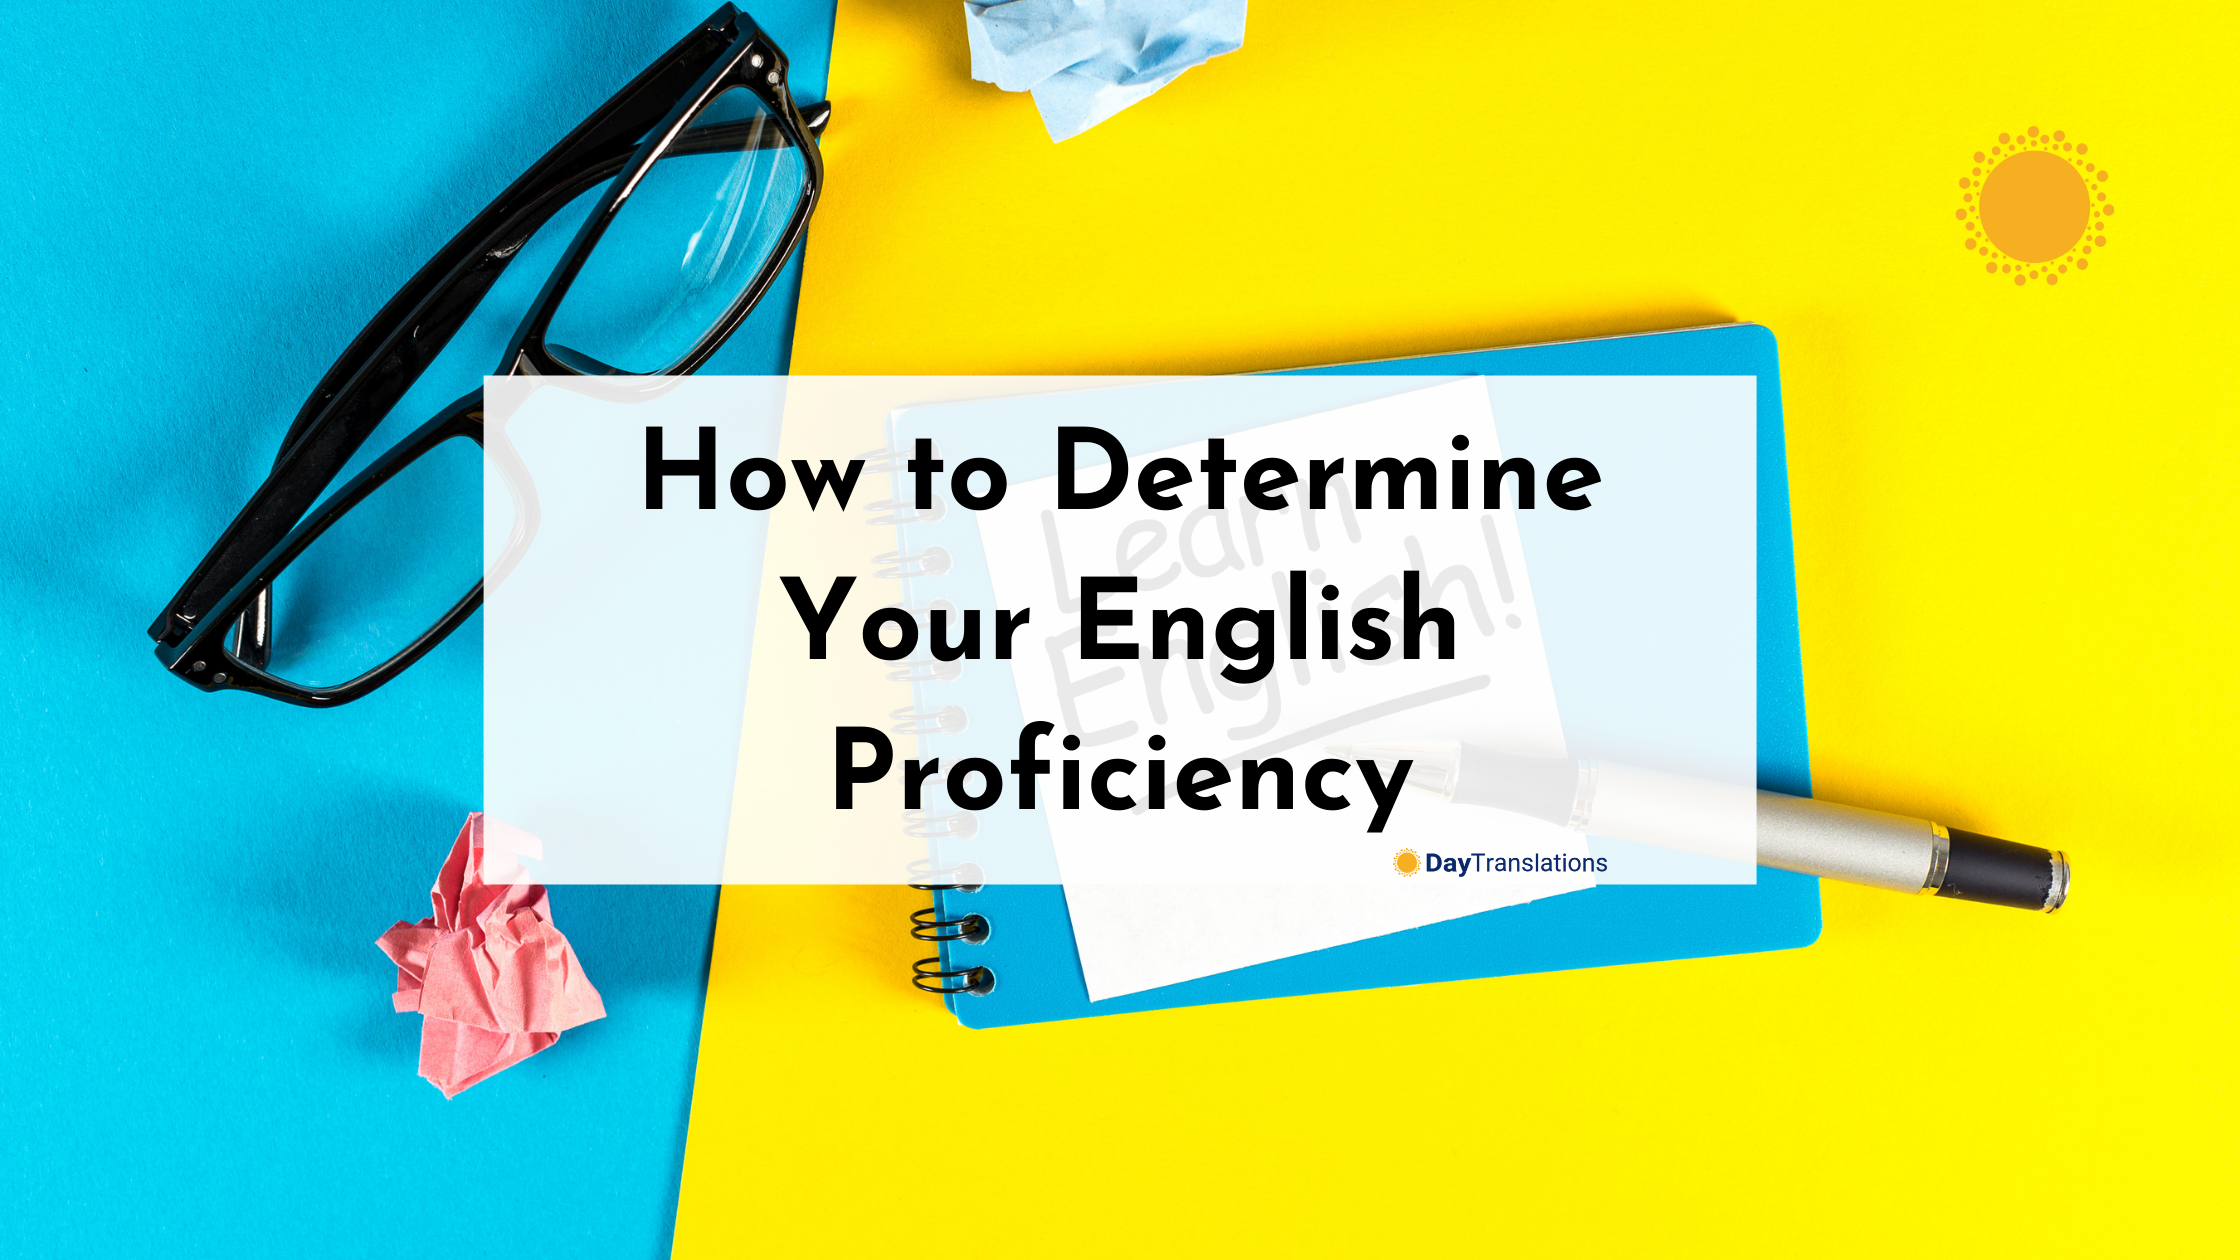 How to Determine Your English Proficiency